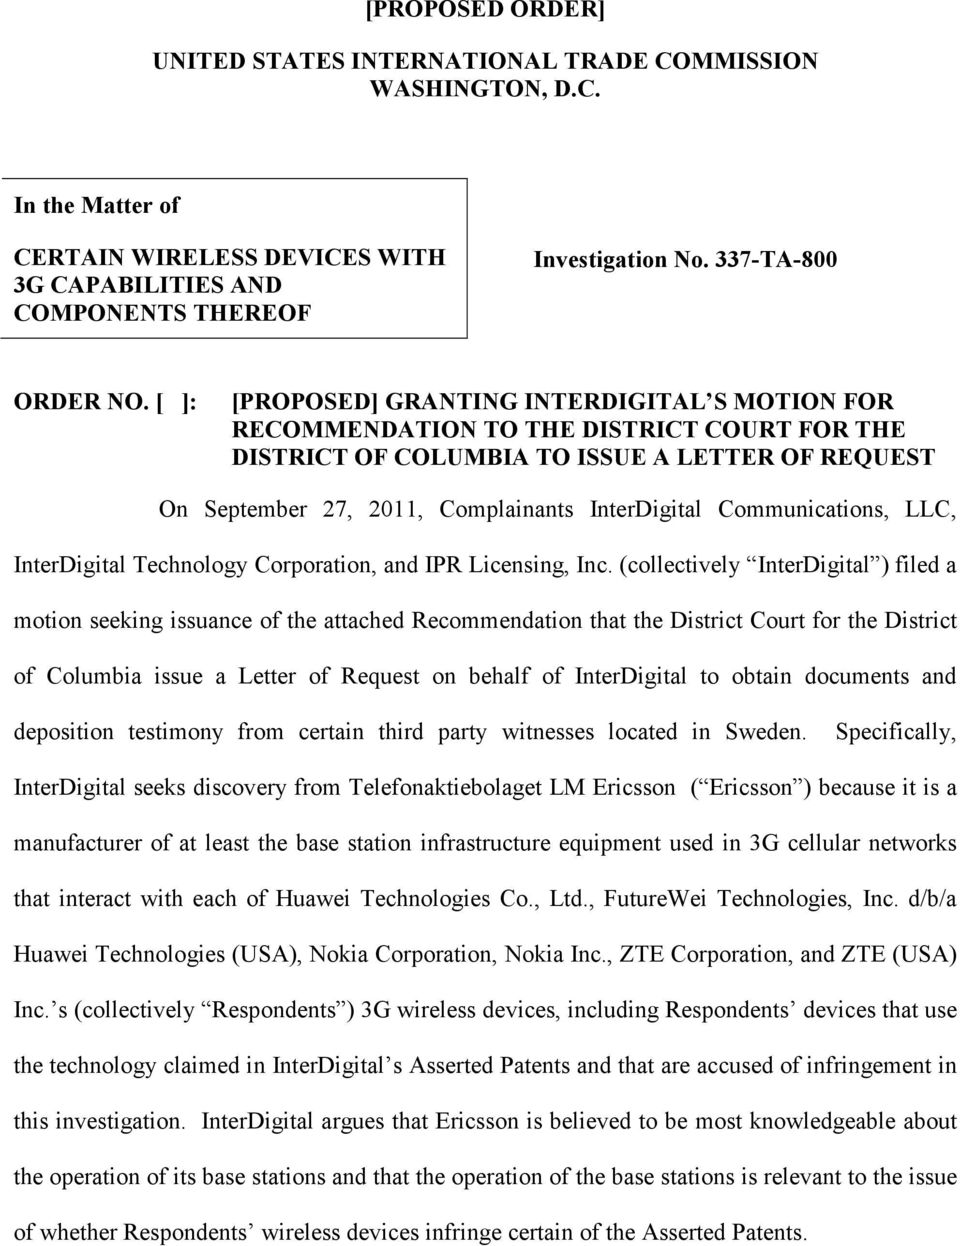 [ ]: [PROPOSED] GRANTING INTERDIGITAL S MOTION FOR RECOMMENDATION TO THE DISTRICT COURT FOR THE DISTRICT OF COLUMBIA TO ISSUE A LETTER OF REQUEST On September 27, 2011, Complainants InterDigital